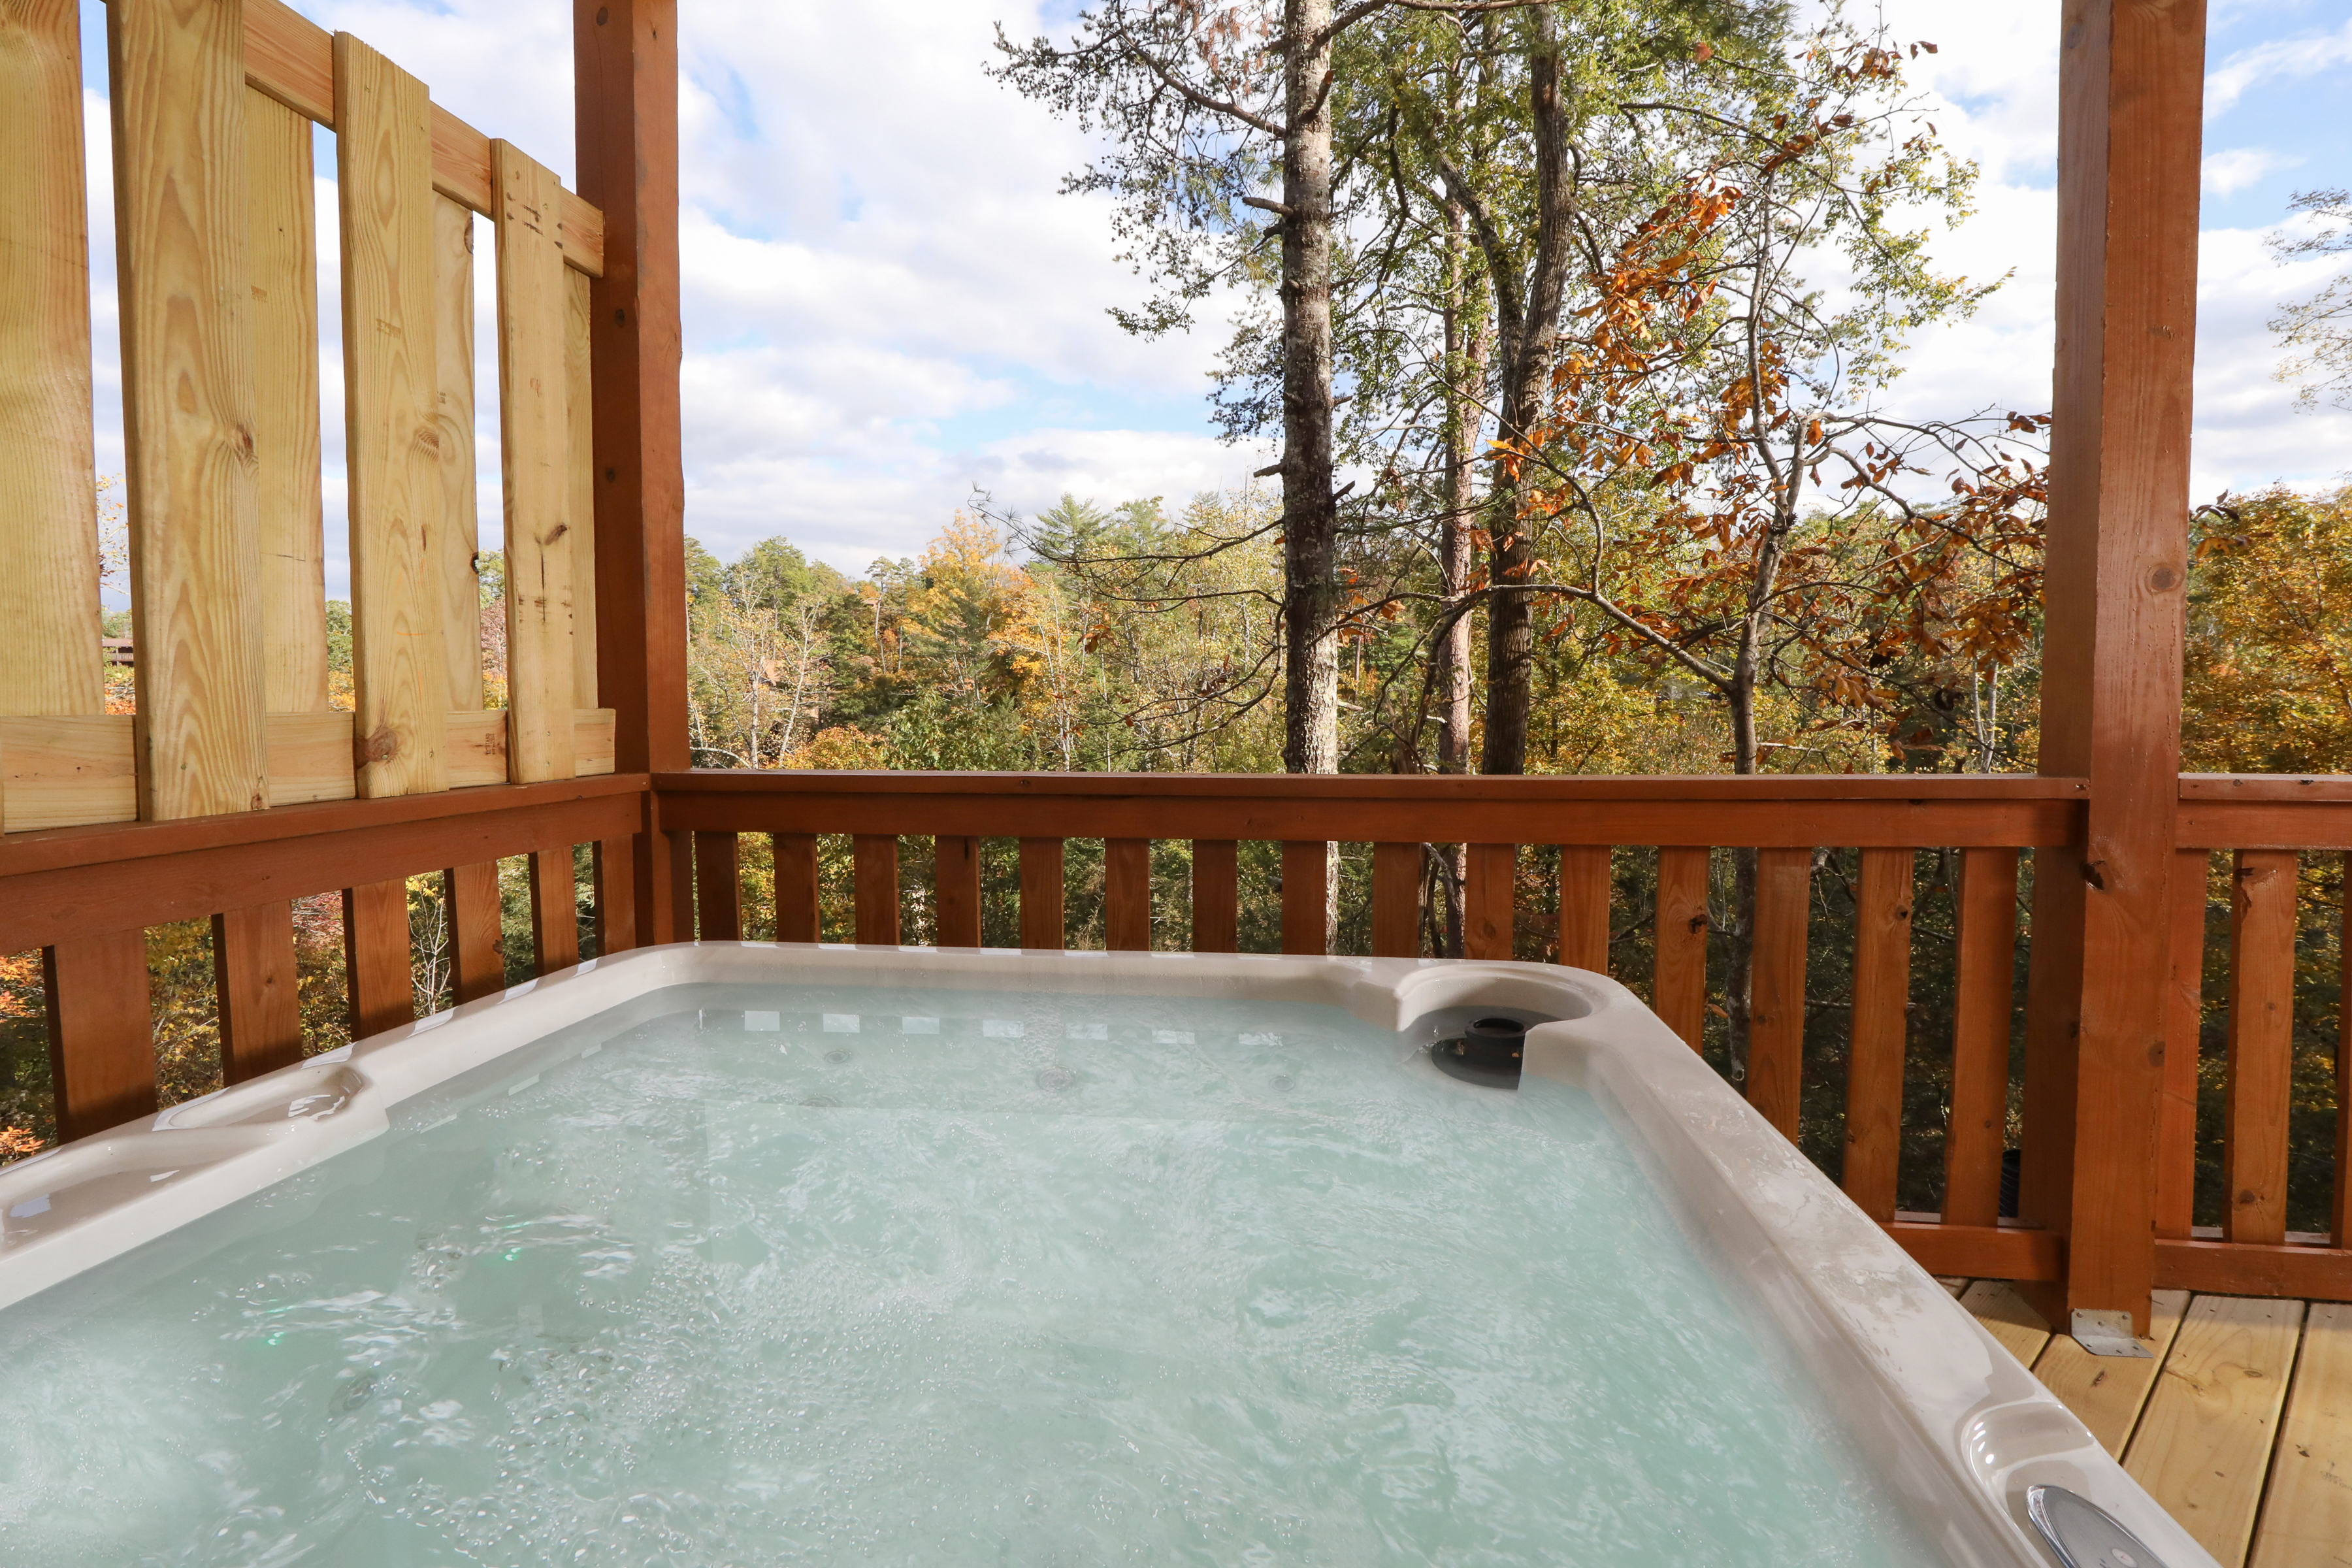 pigeon table living one chalet secret over wear cabin a area bedroom looks valley cabins rental with s in the our room pools rendezvous that indoor forge pool